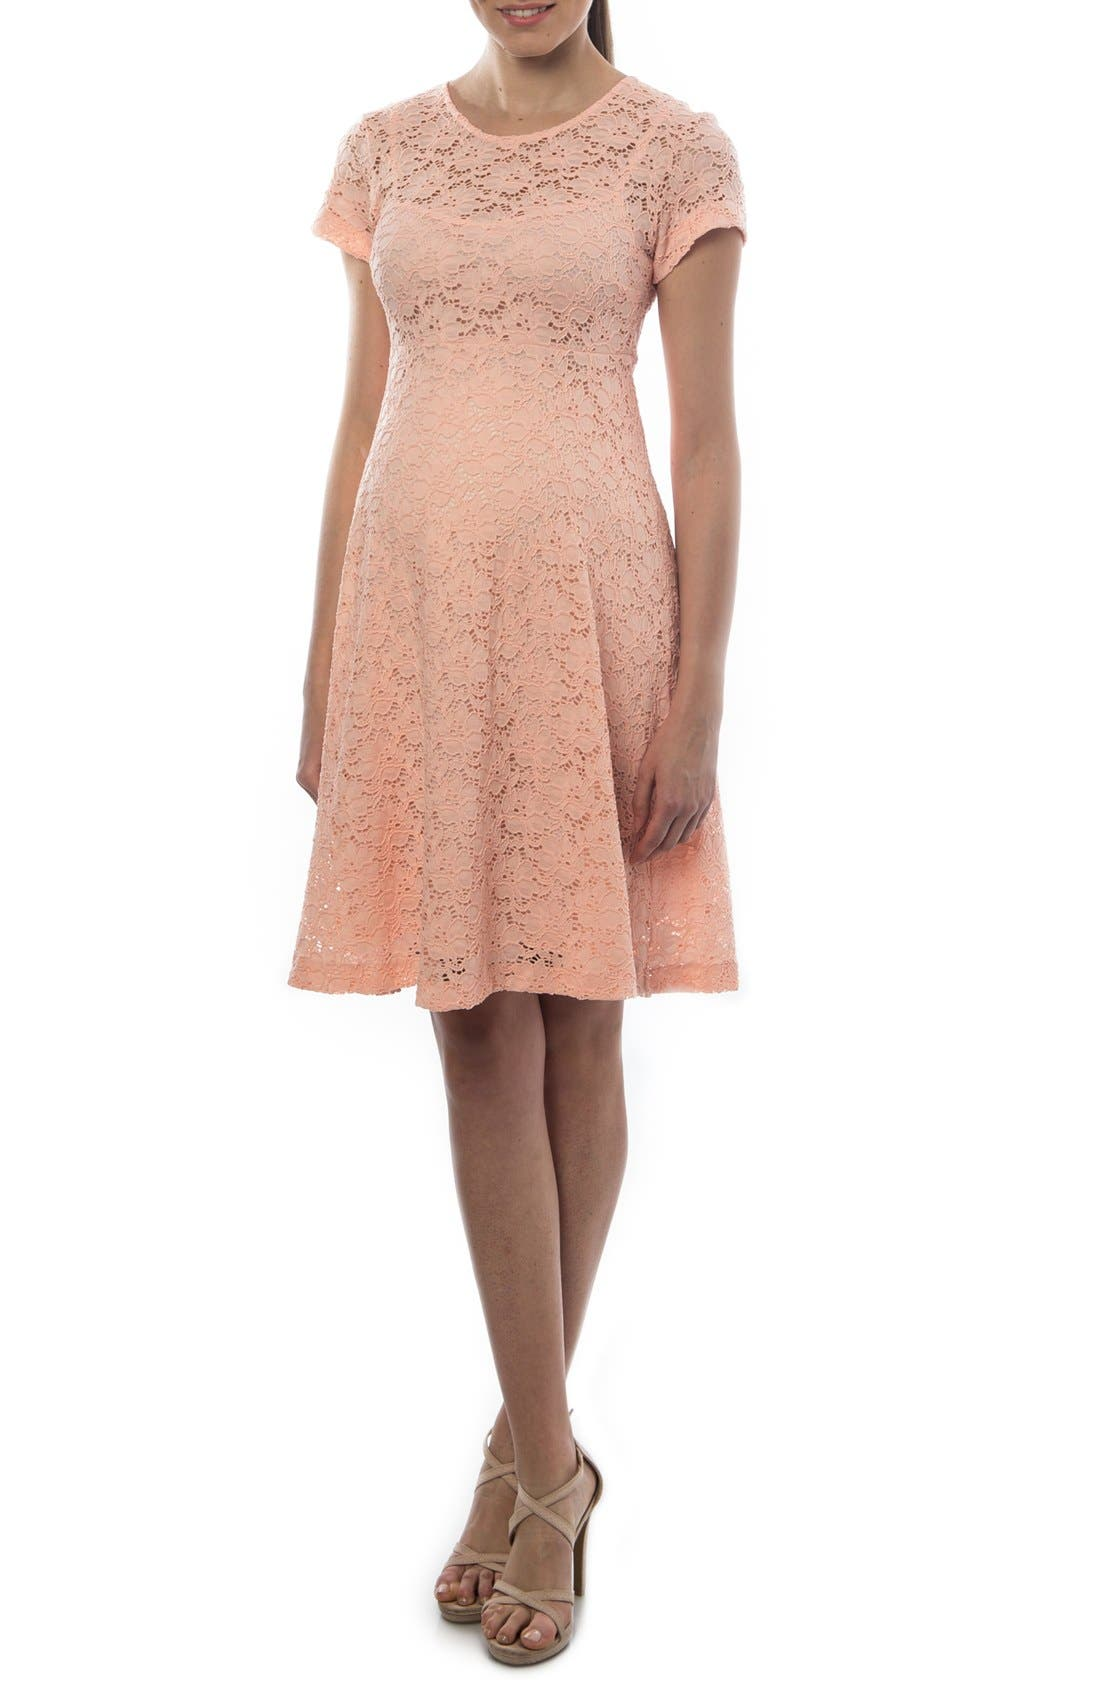 PIETRO BRUNELLI 'Rodano' Lace Maternity Dress